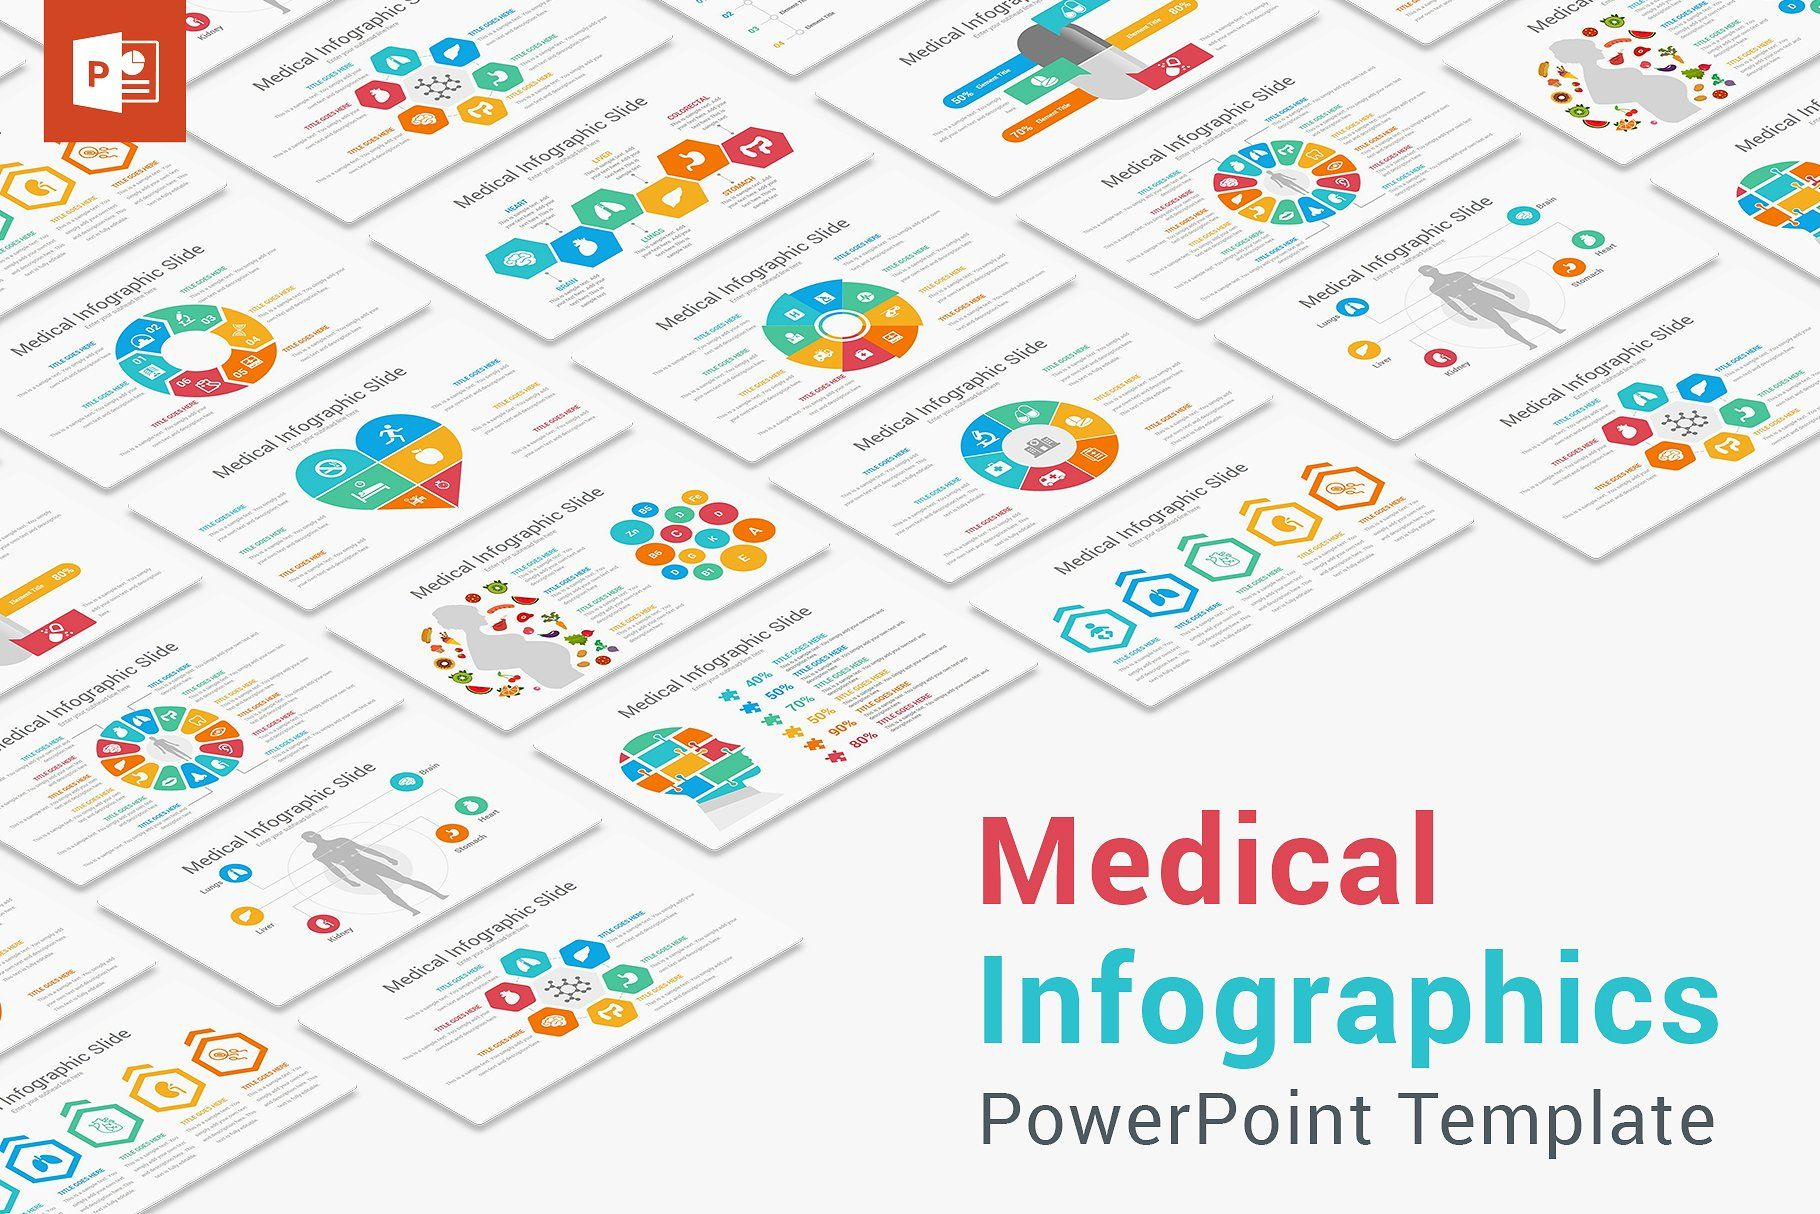 Powerpoint medical infographics powerpoint presentation templates slidesalad medical and healthcare infographics powerpoint presentation template one of the best and modern toneelgroepblik Choice Image